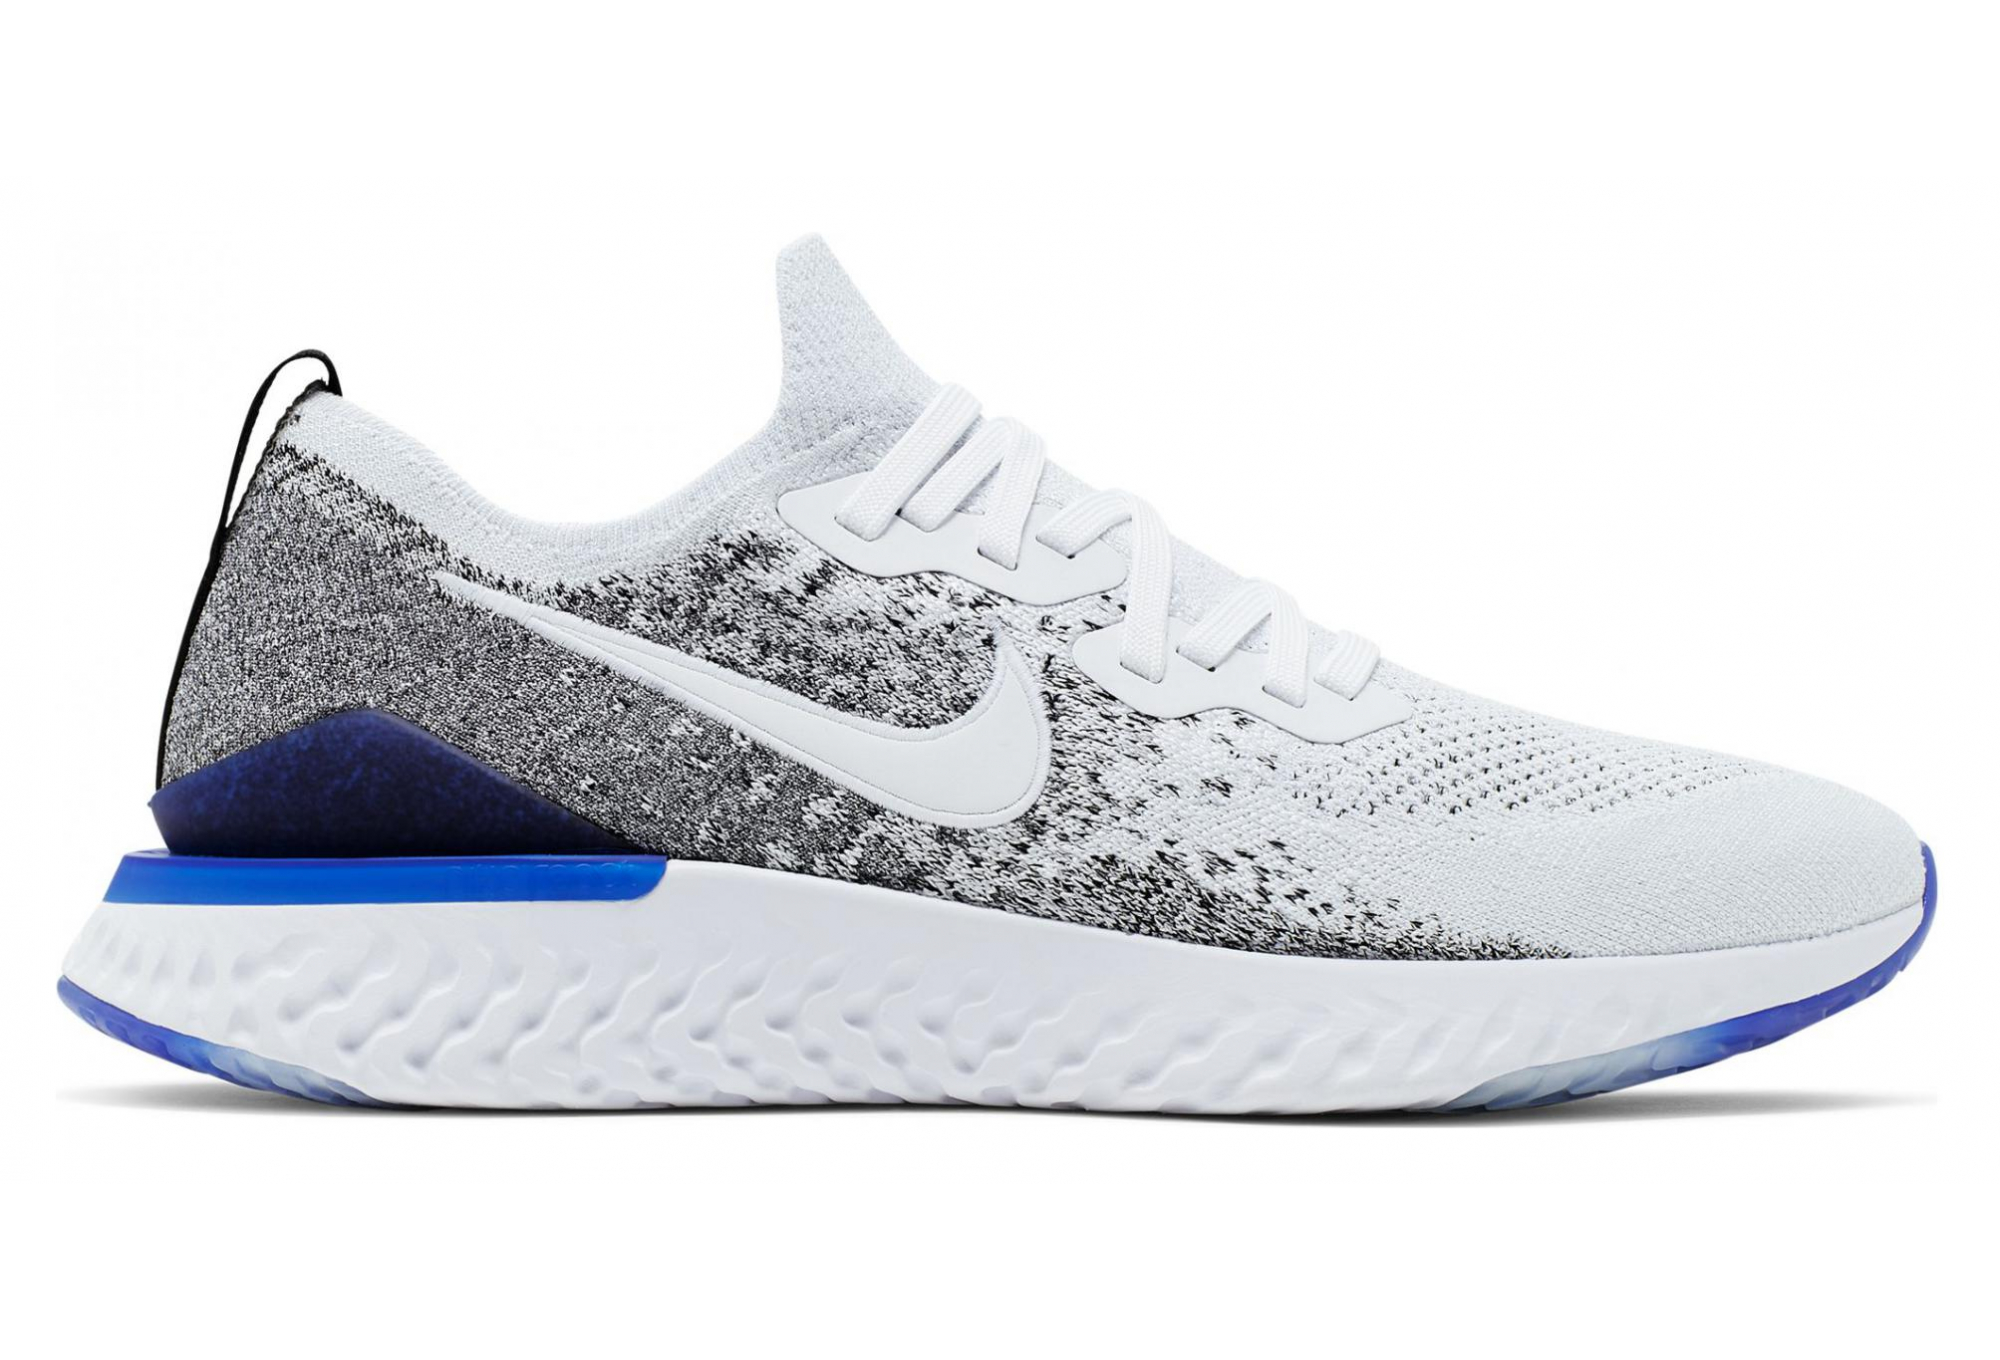 new products 5b7a7 e82e9 Nike Epic React Flyknit 2 White Grey Men